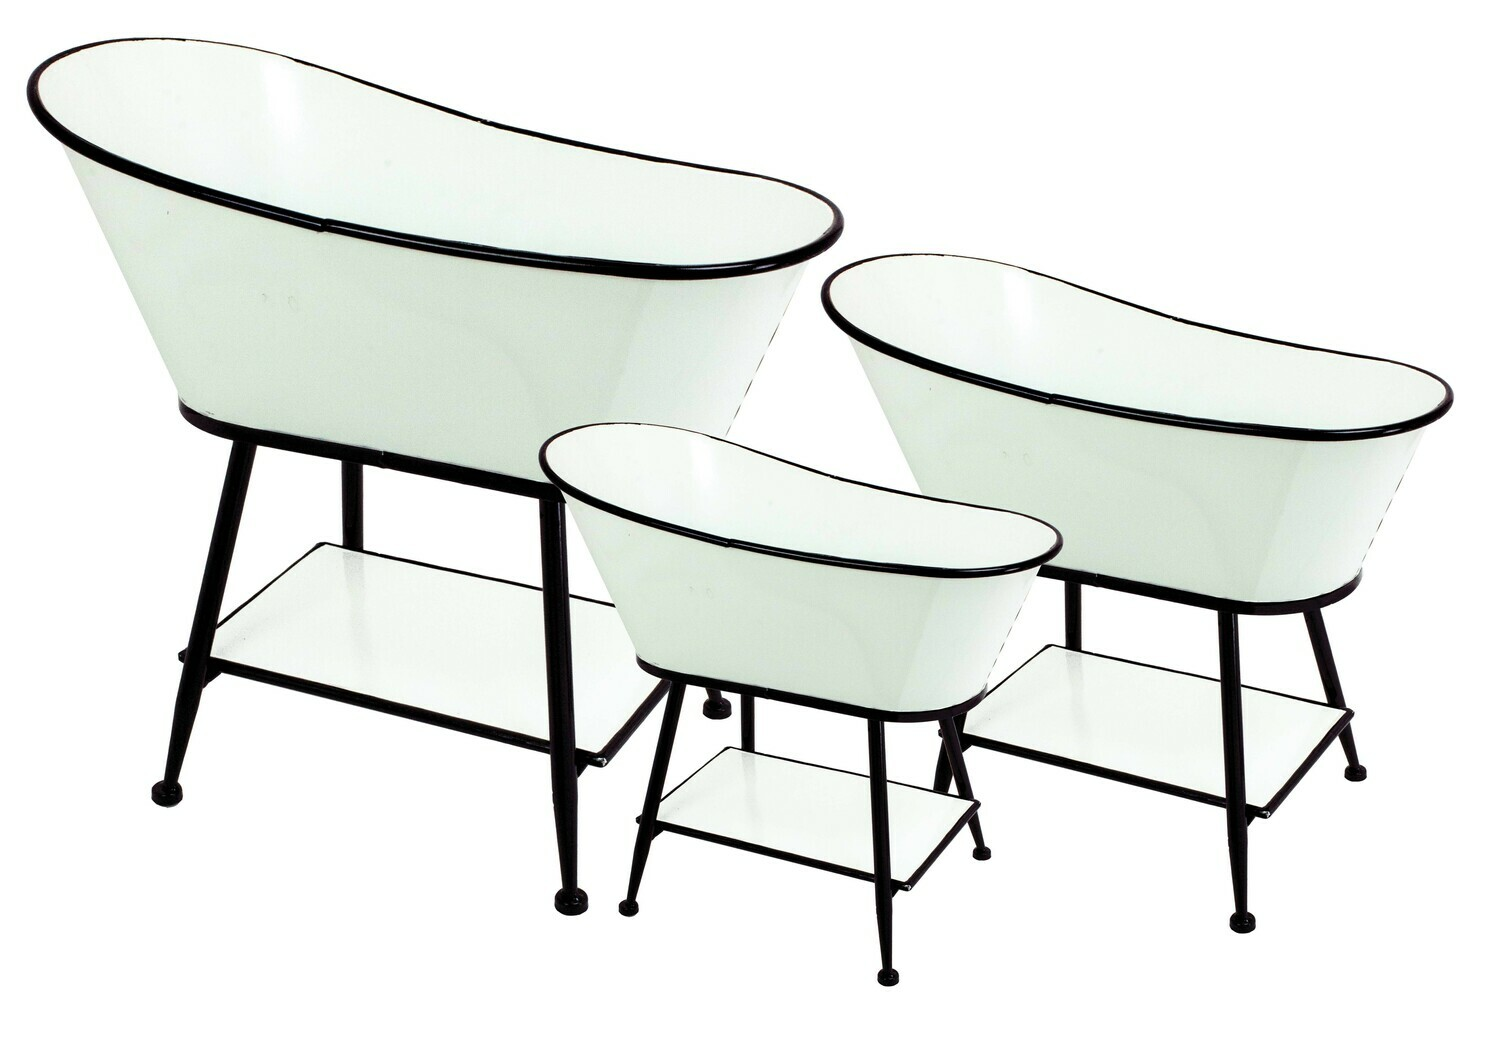 Standing Tub Planters - Large